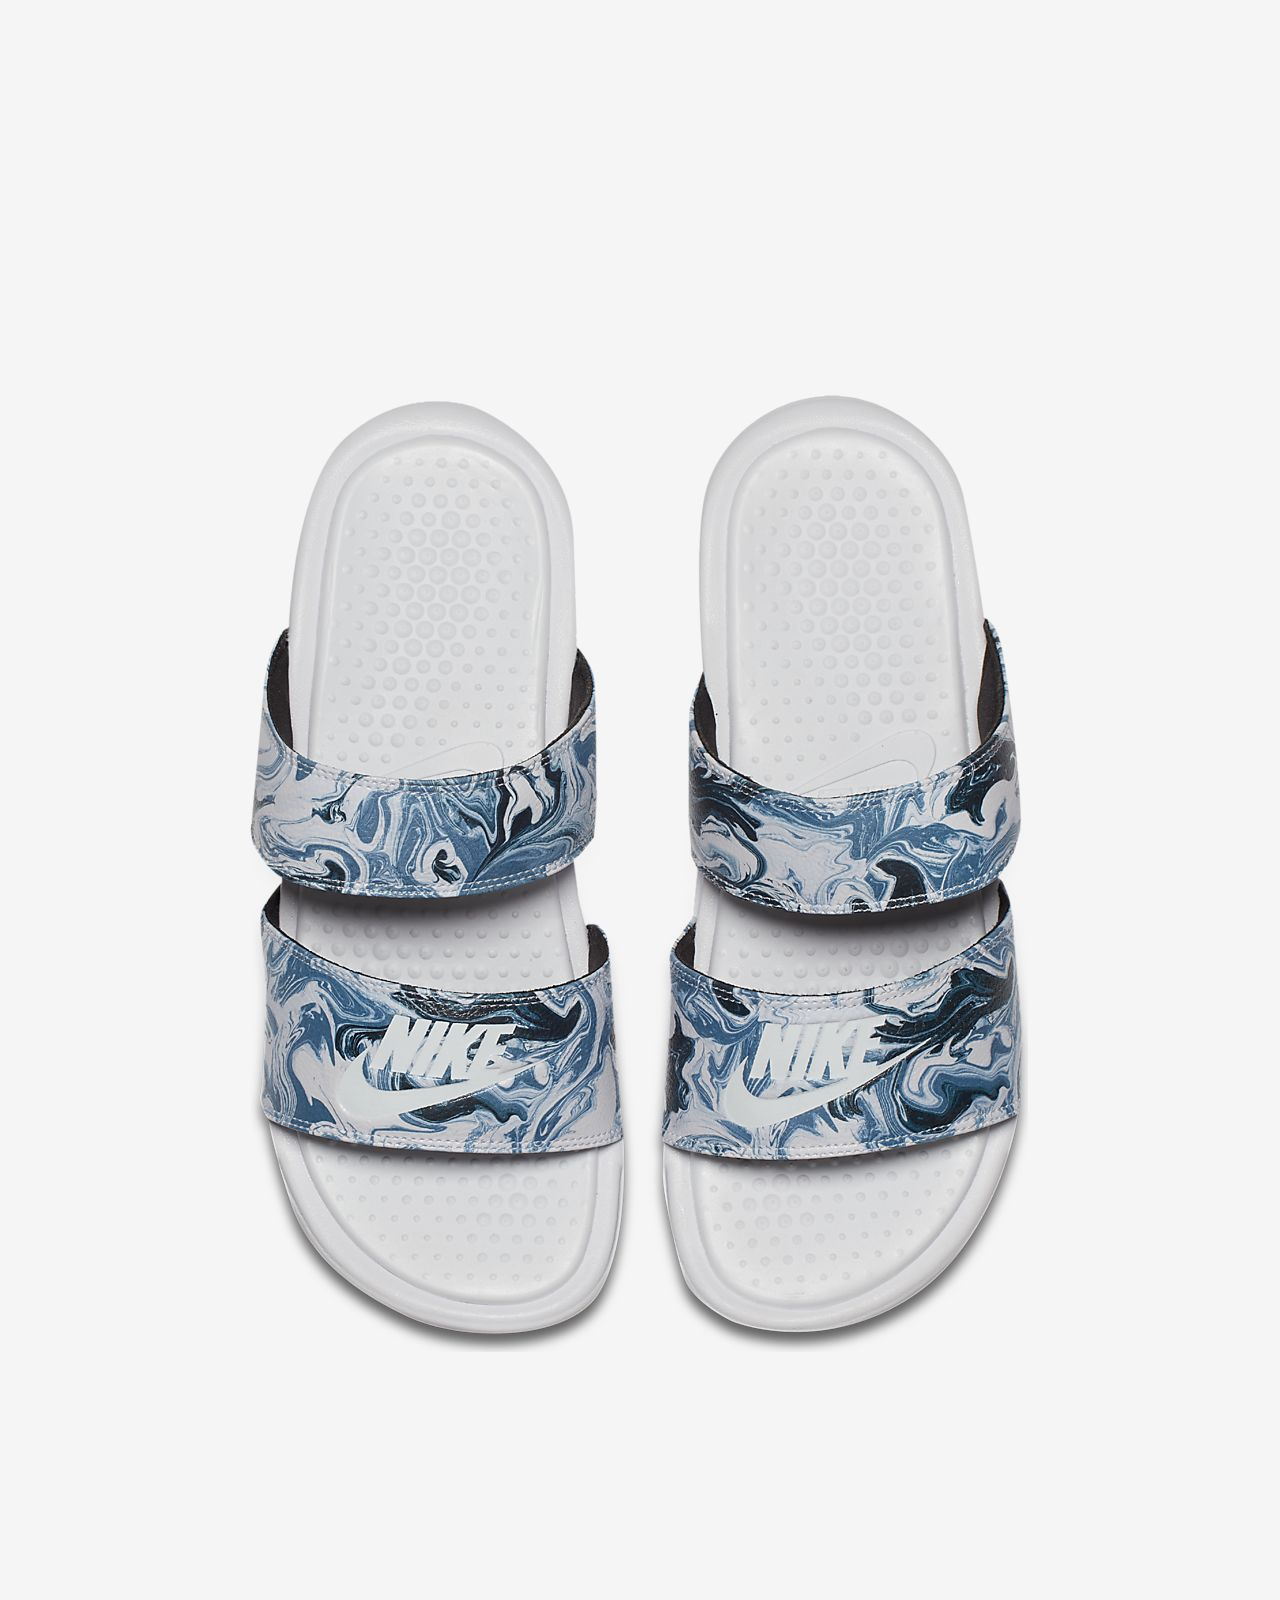 ... Nike Benassi Duo Ultra Marble Women's Slide